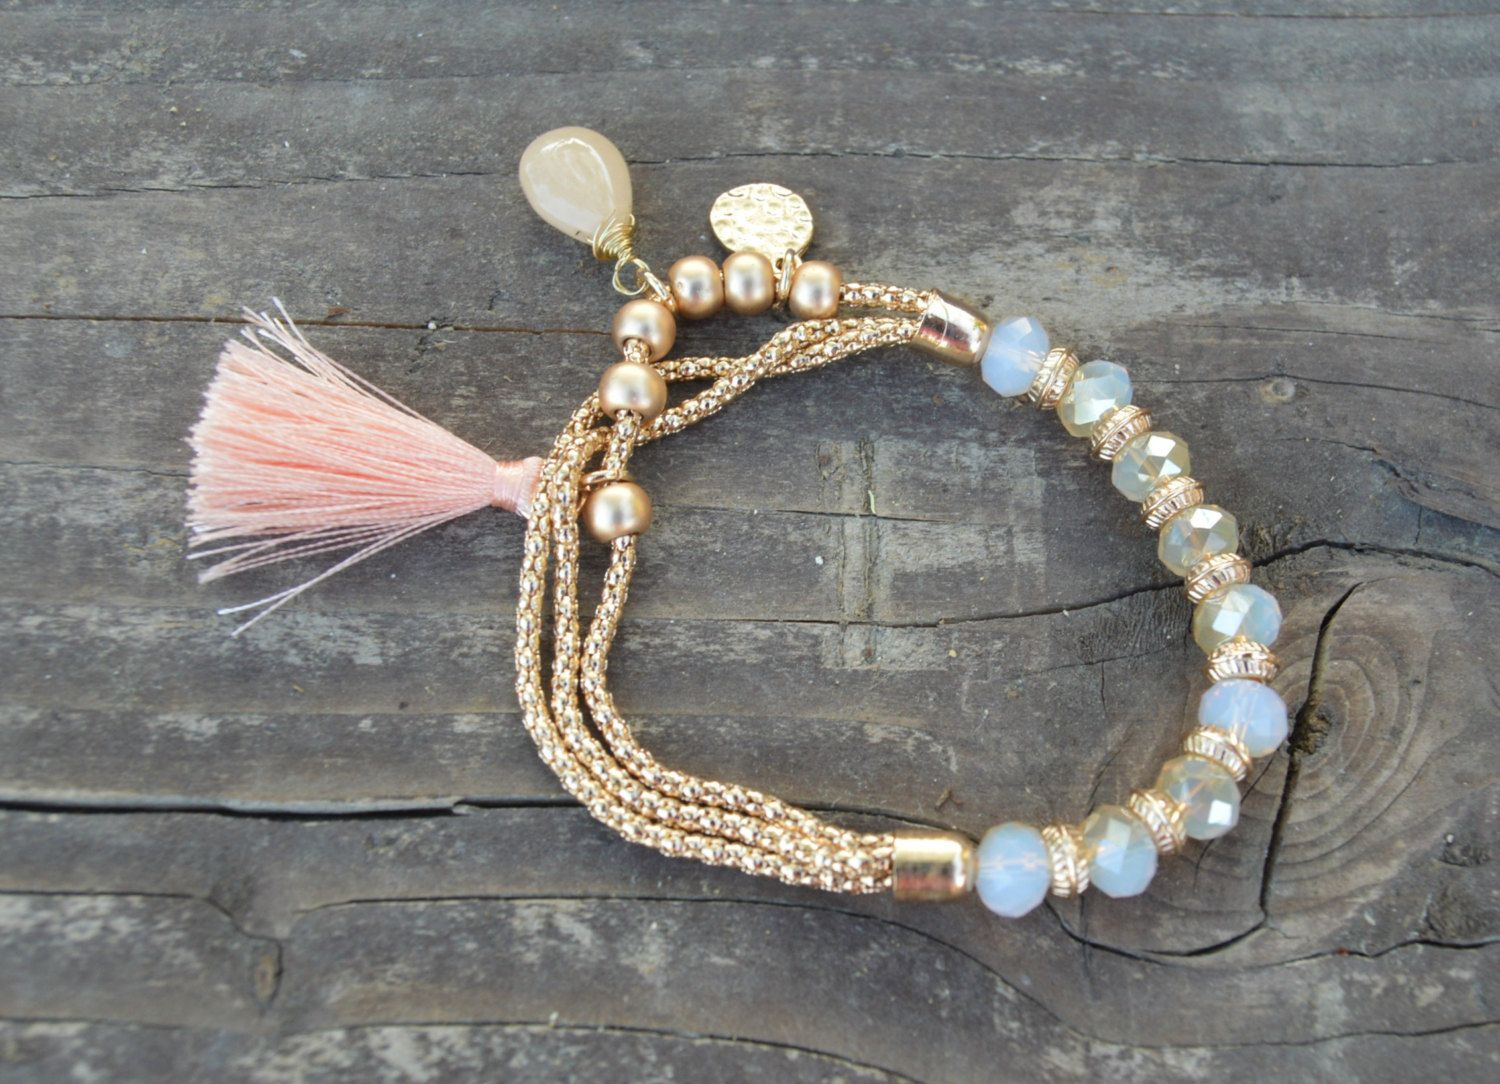 Gold Chain and Crystal Beads Elastic Bracelet with Tassel and Charms ...